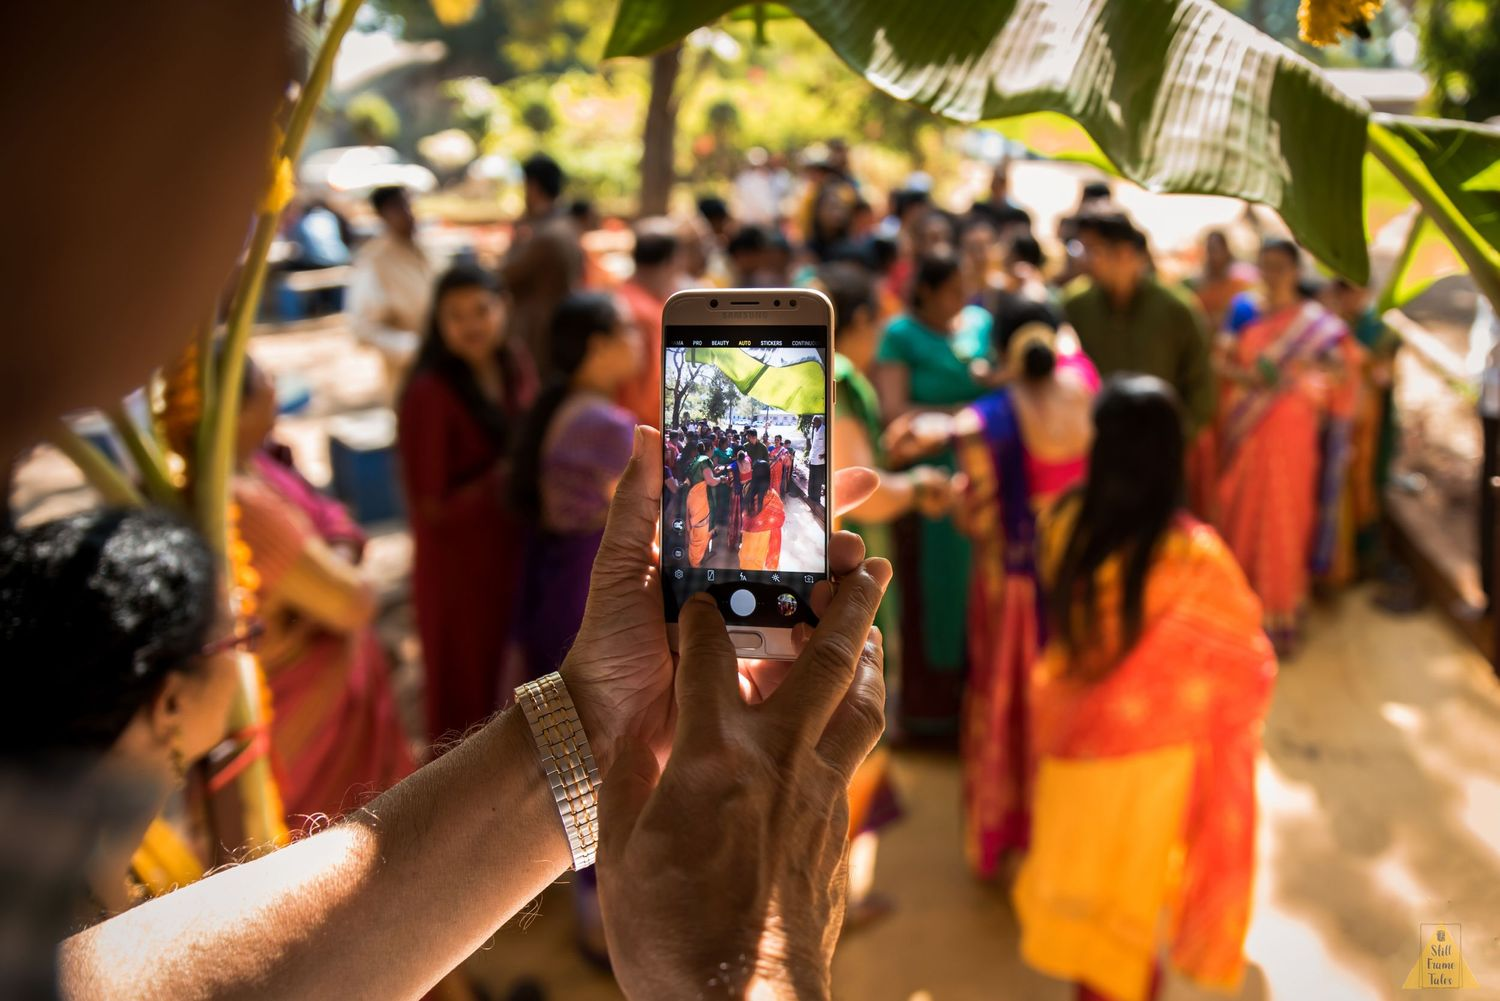 Relatives dancig and enjoying at a destination wedding while someone clicking their picture in a mobile phone